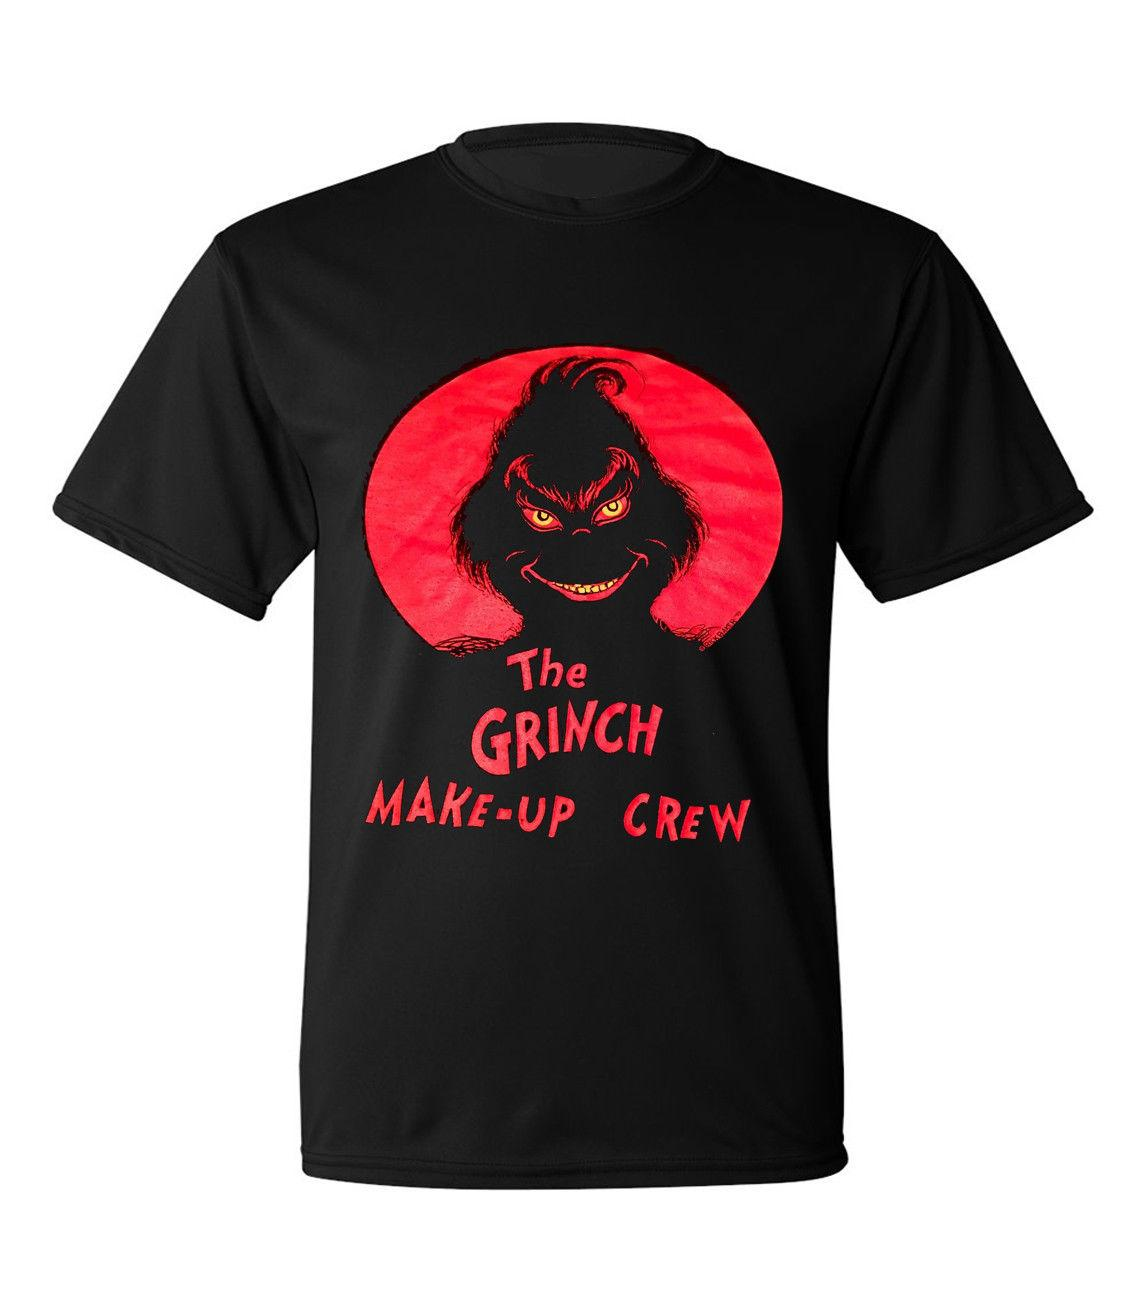 bcaecf21c How The Grinch Stole Christmas Dr. Suess Movie Black T Shirt Size 100%  Cotton Casual Printing Short Sleeve Men T Shirt O Neck Cheap T Shirts Long  Sleeve T ...